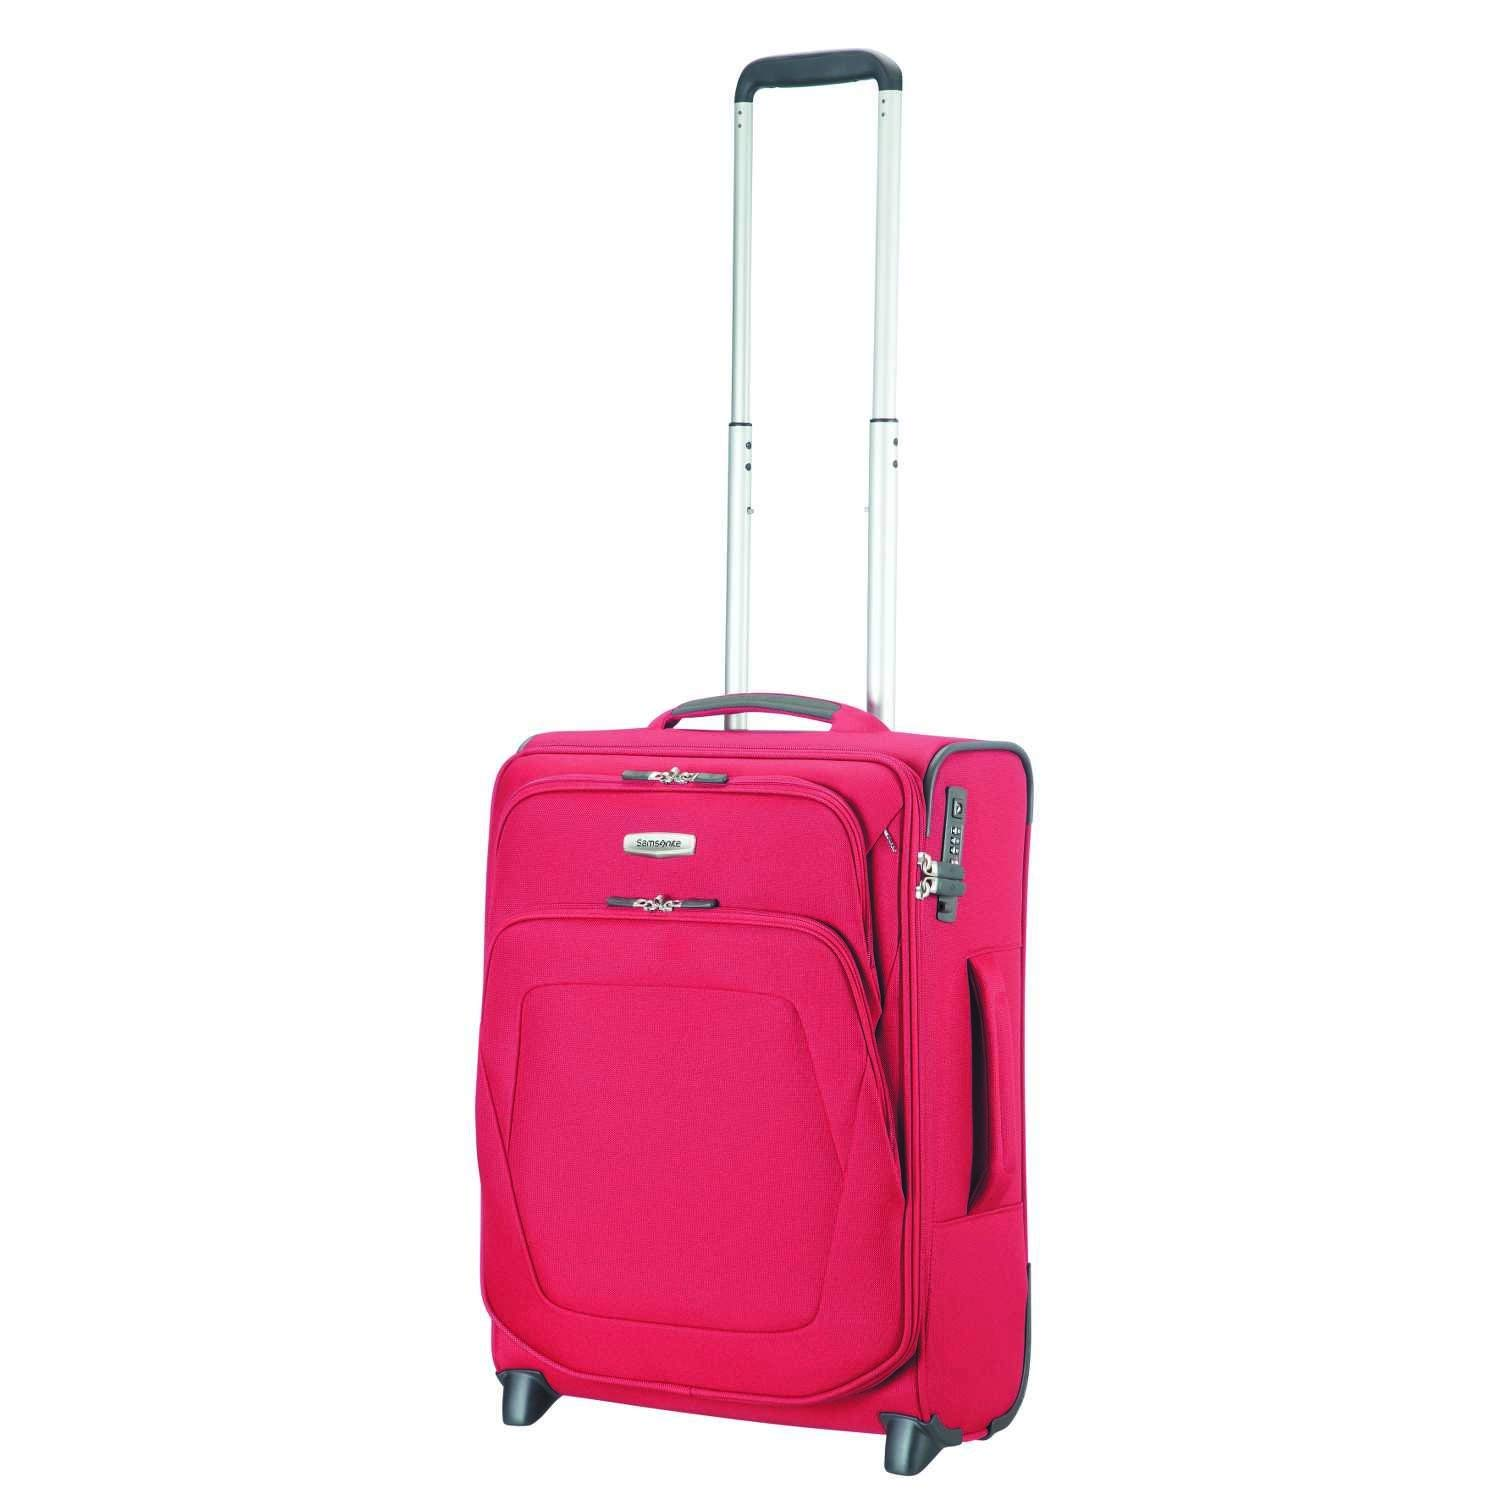 Bagage cabine Smasonite Spark SNG Upright 55_20 Expendable Length 3